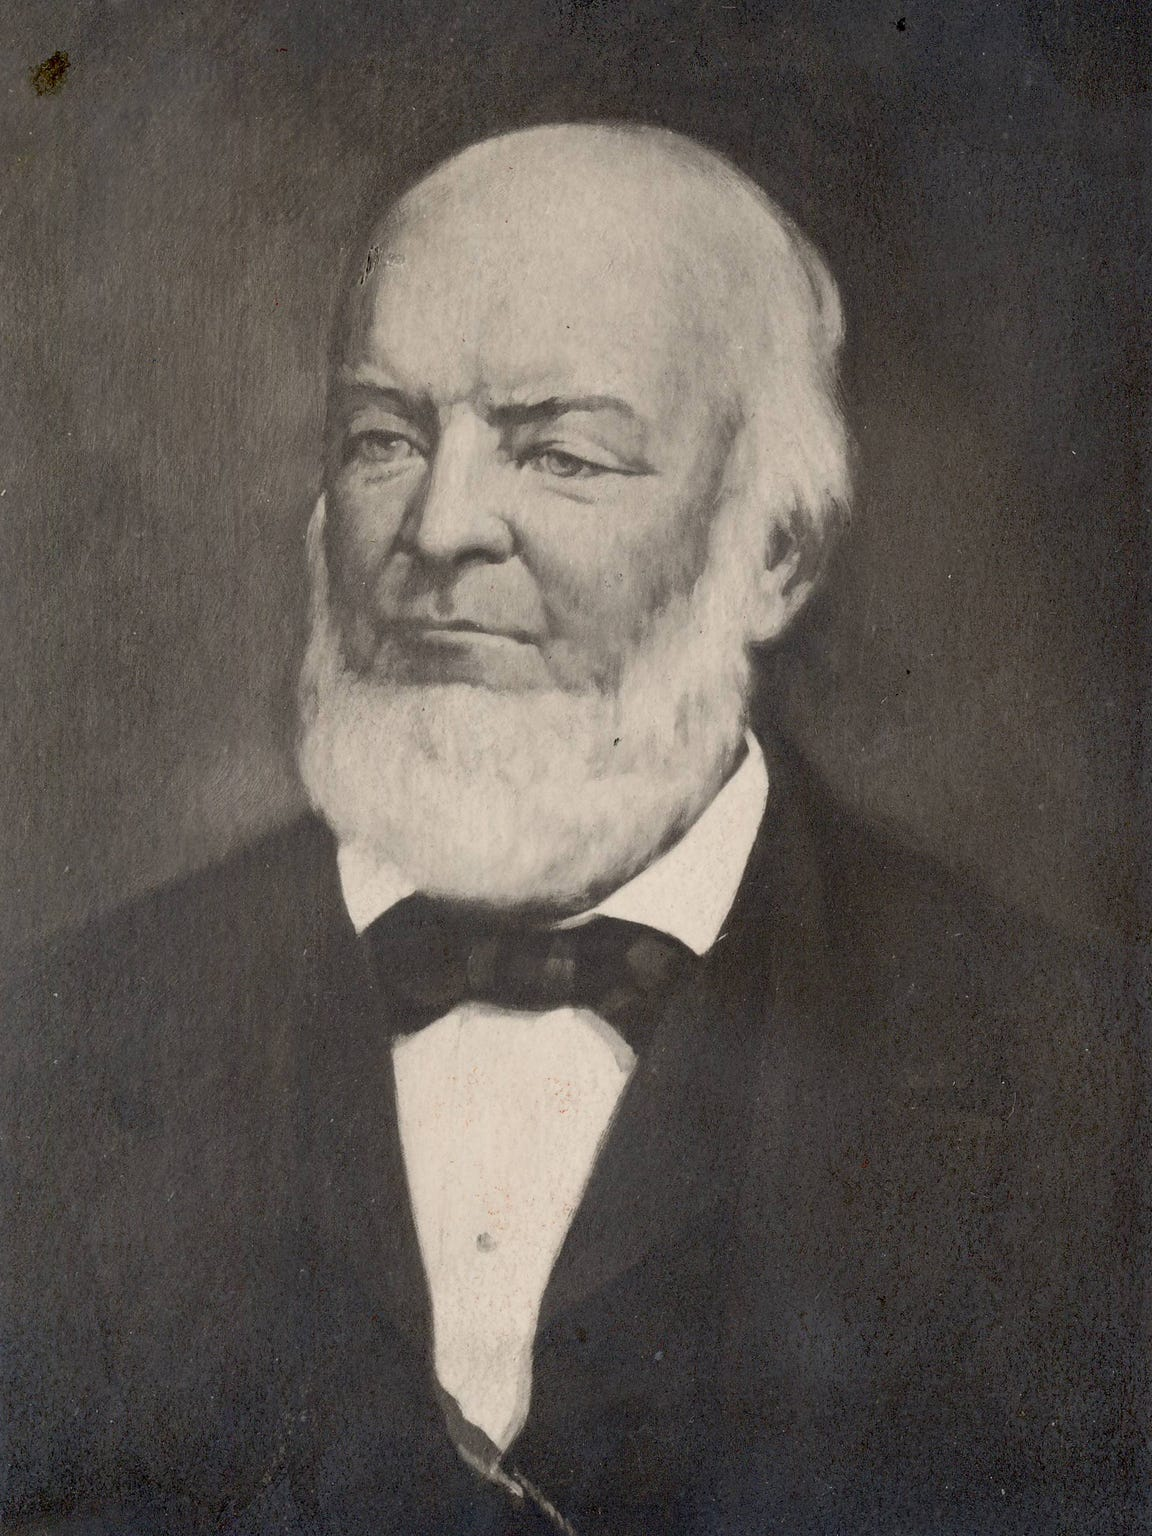 John Brough, the co-founder of The Cincinnati Enquirer